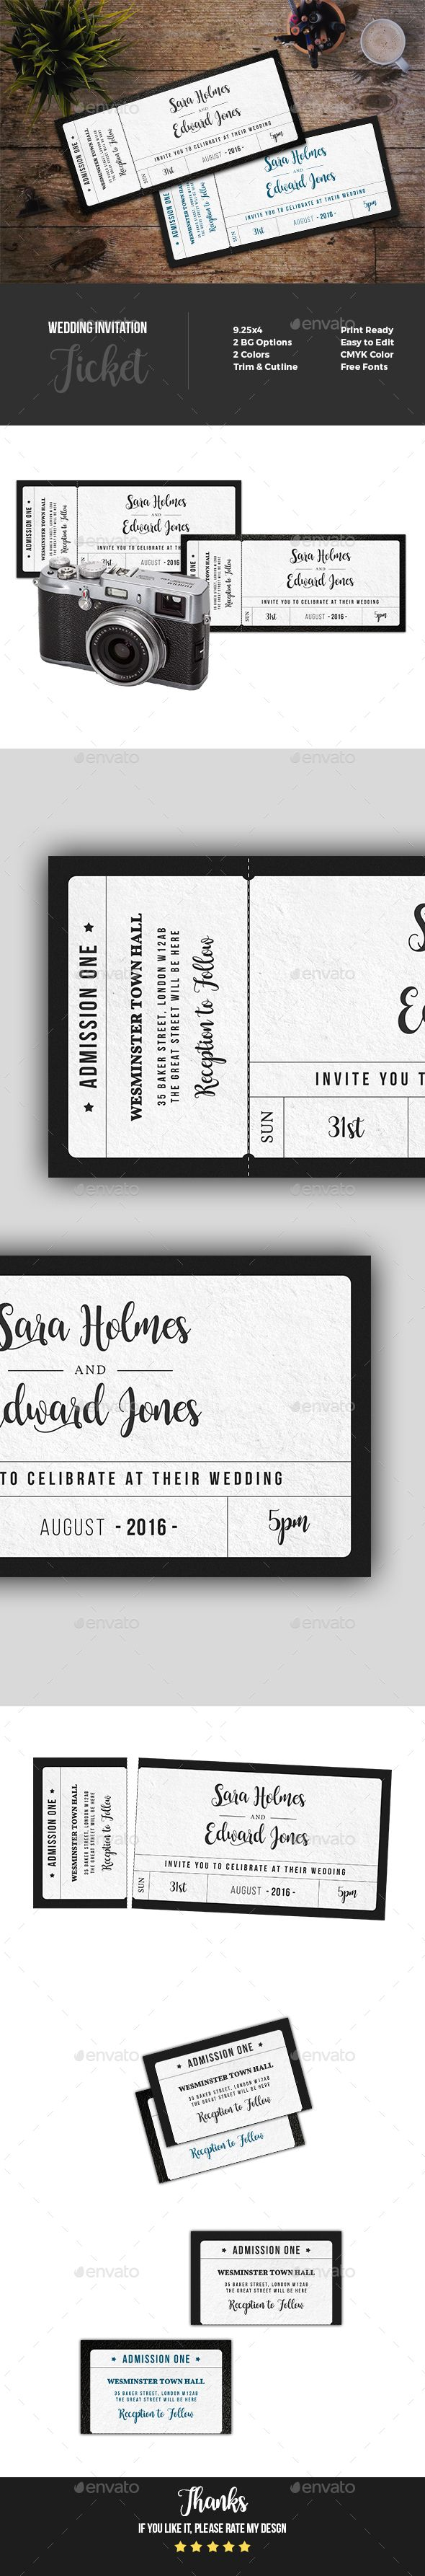 Wedding Invitation Ticket | Template, Psd templates and Graphic ...